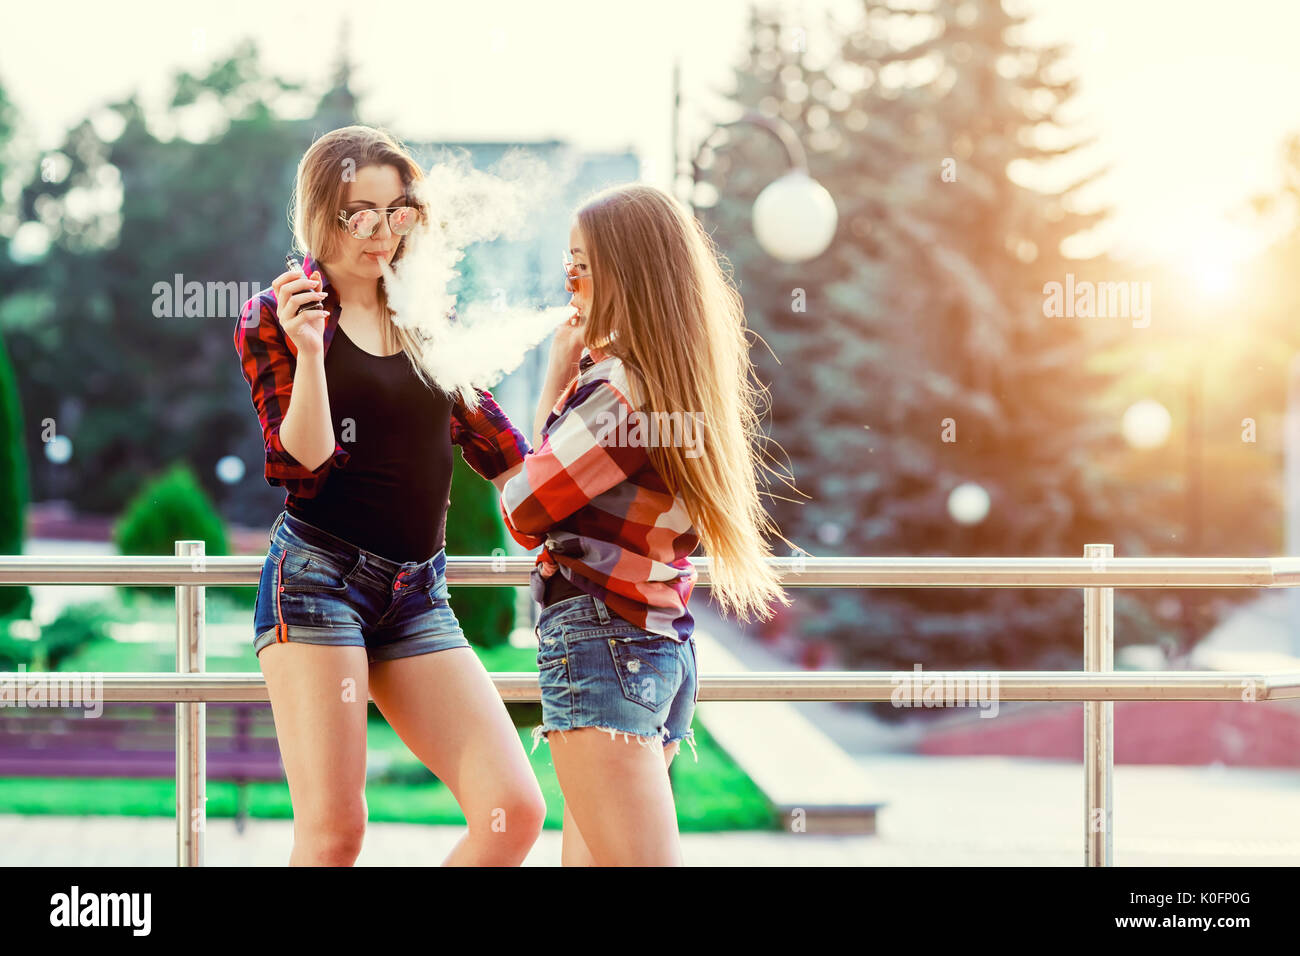 Two women vaping outdoor. The evening sunset over the city. Toned image. - Stock Image